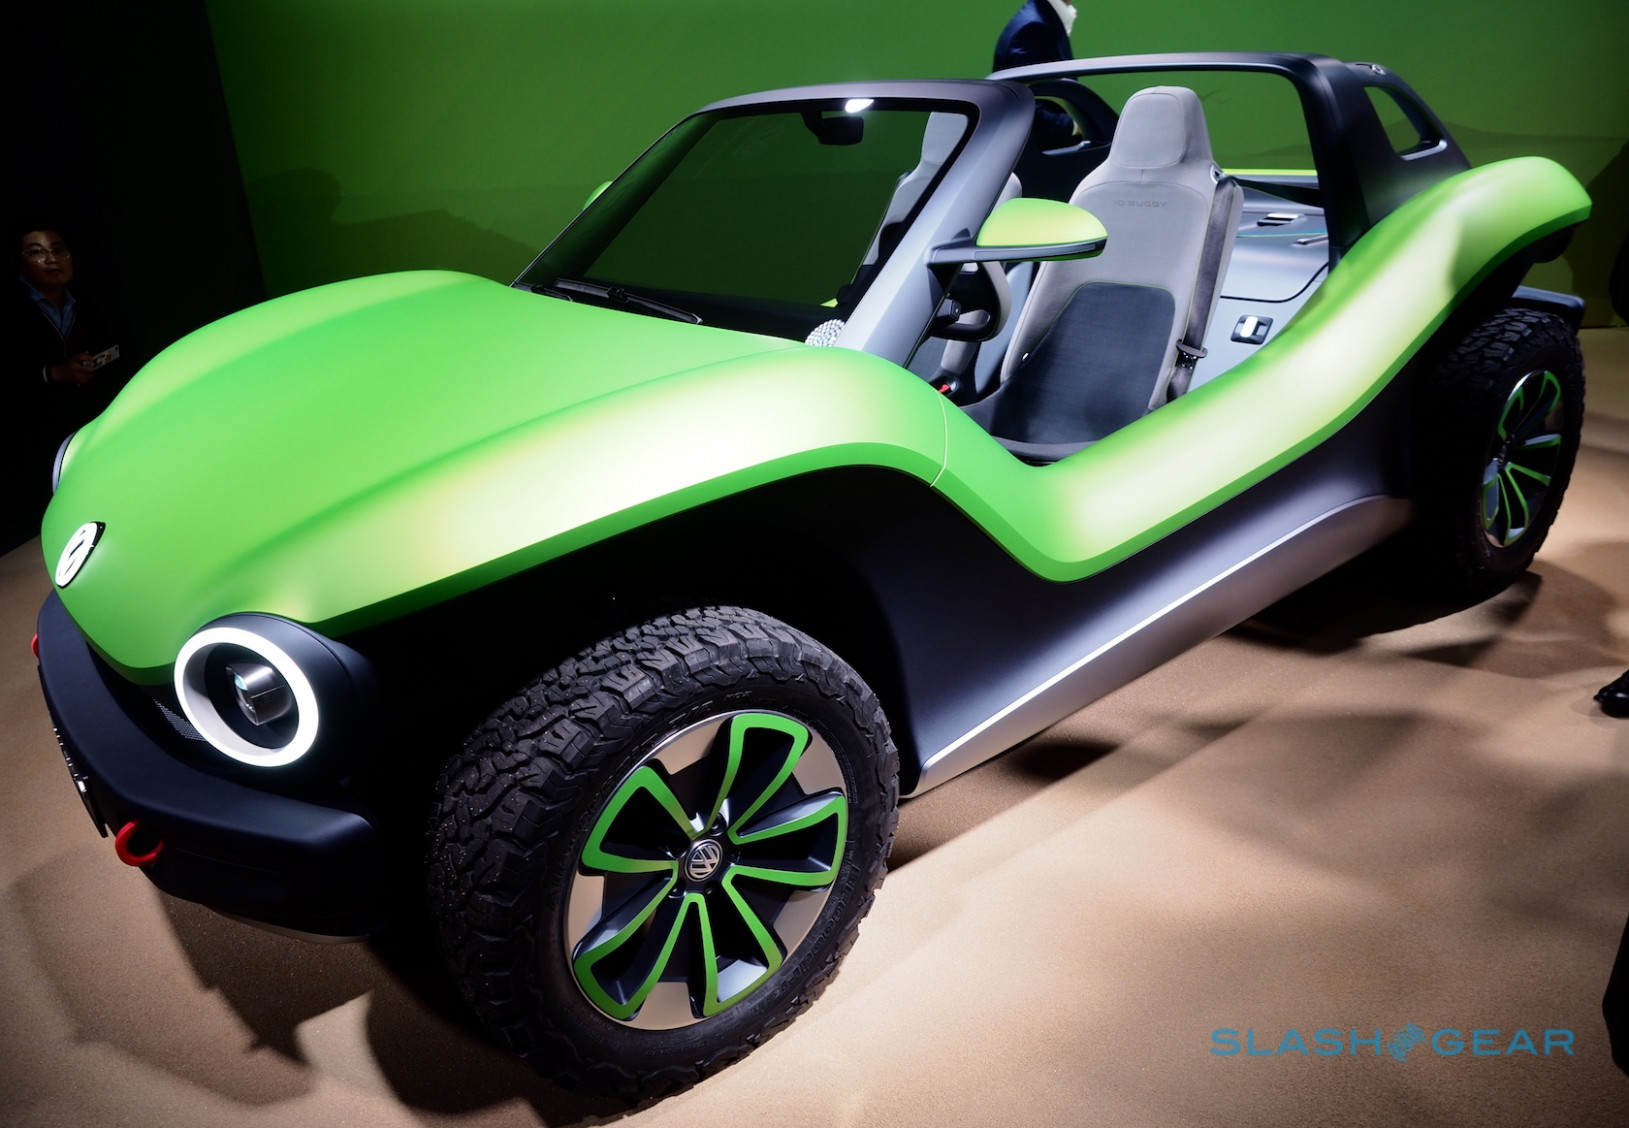 VW I.D. BUGGY is an all-electric dune buggy you have to love ..